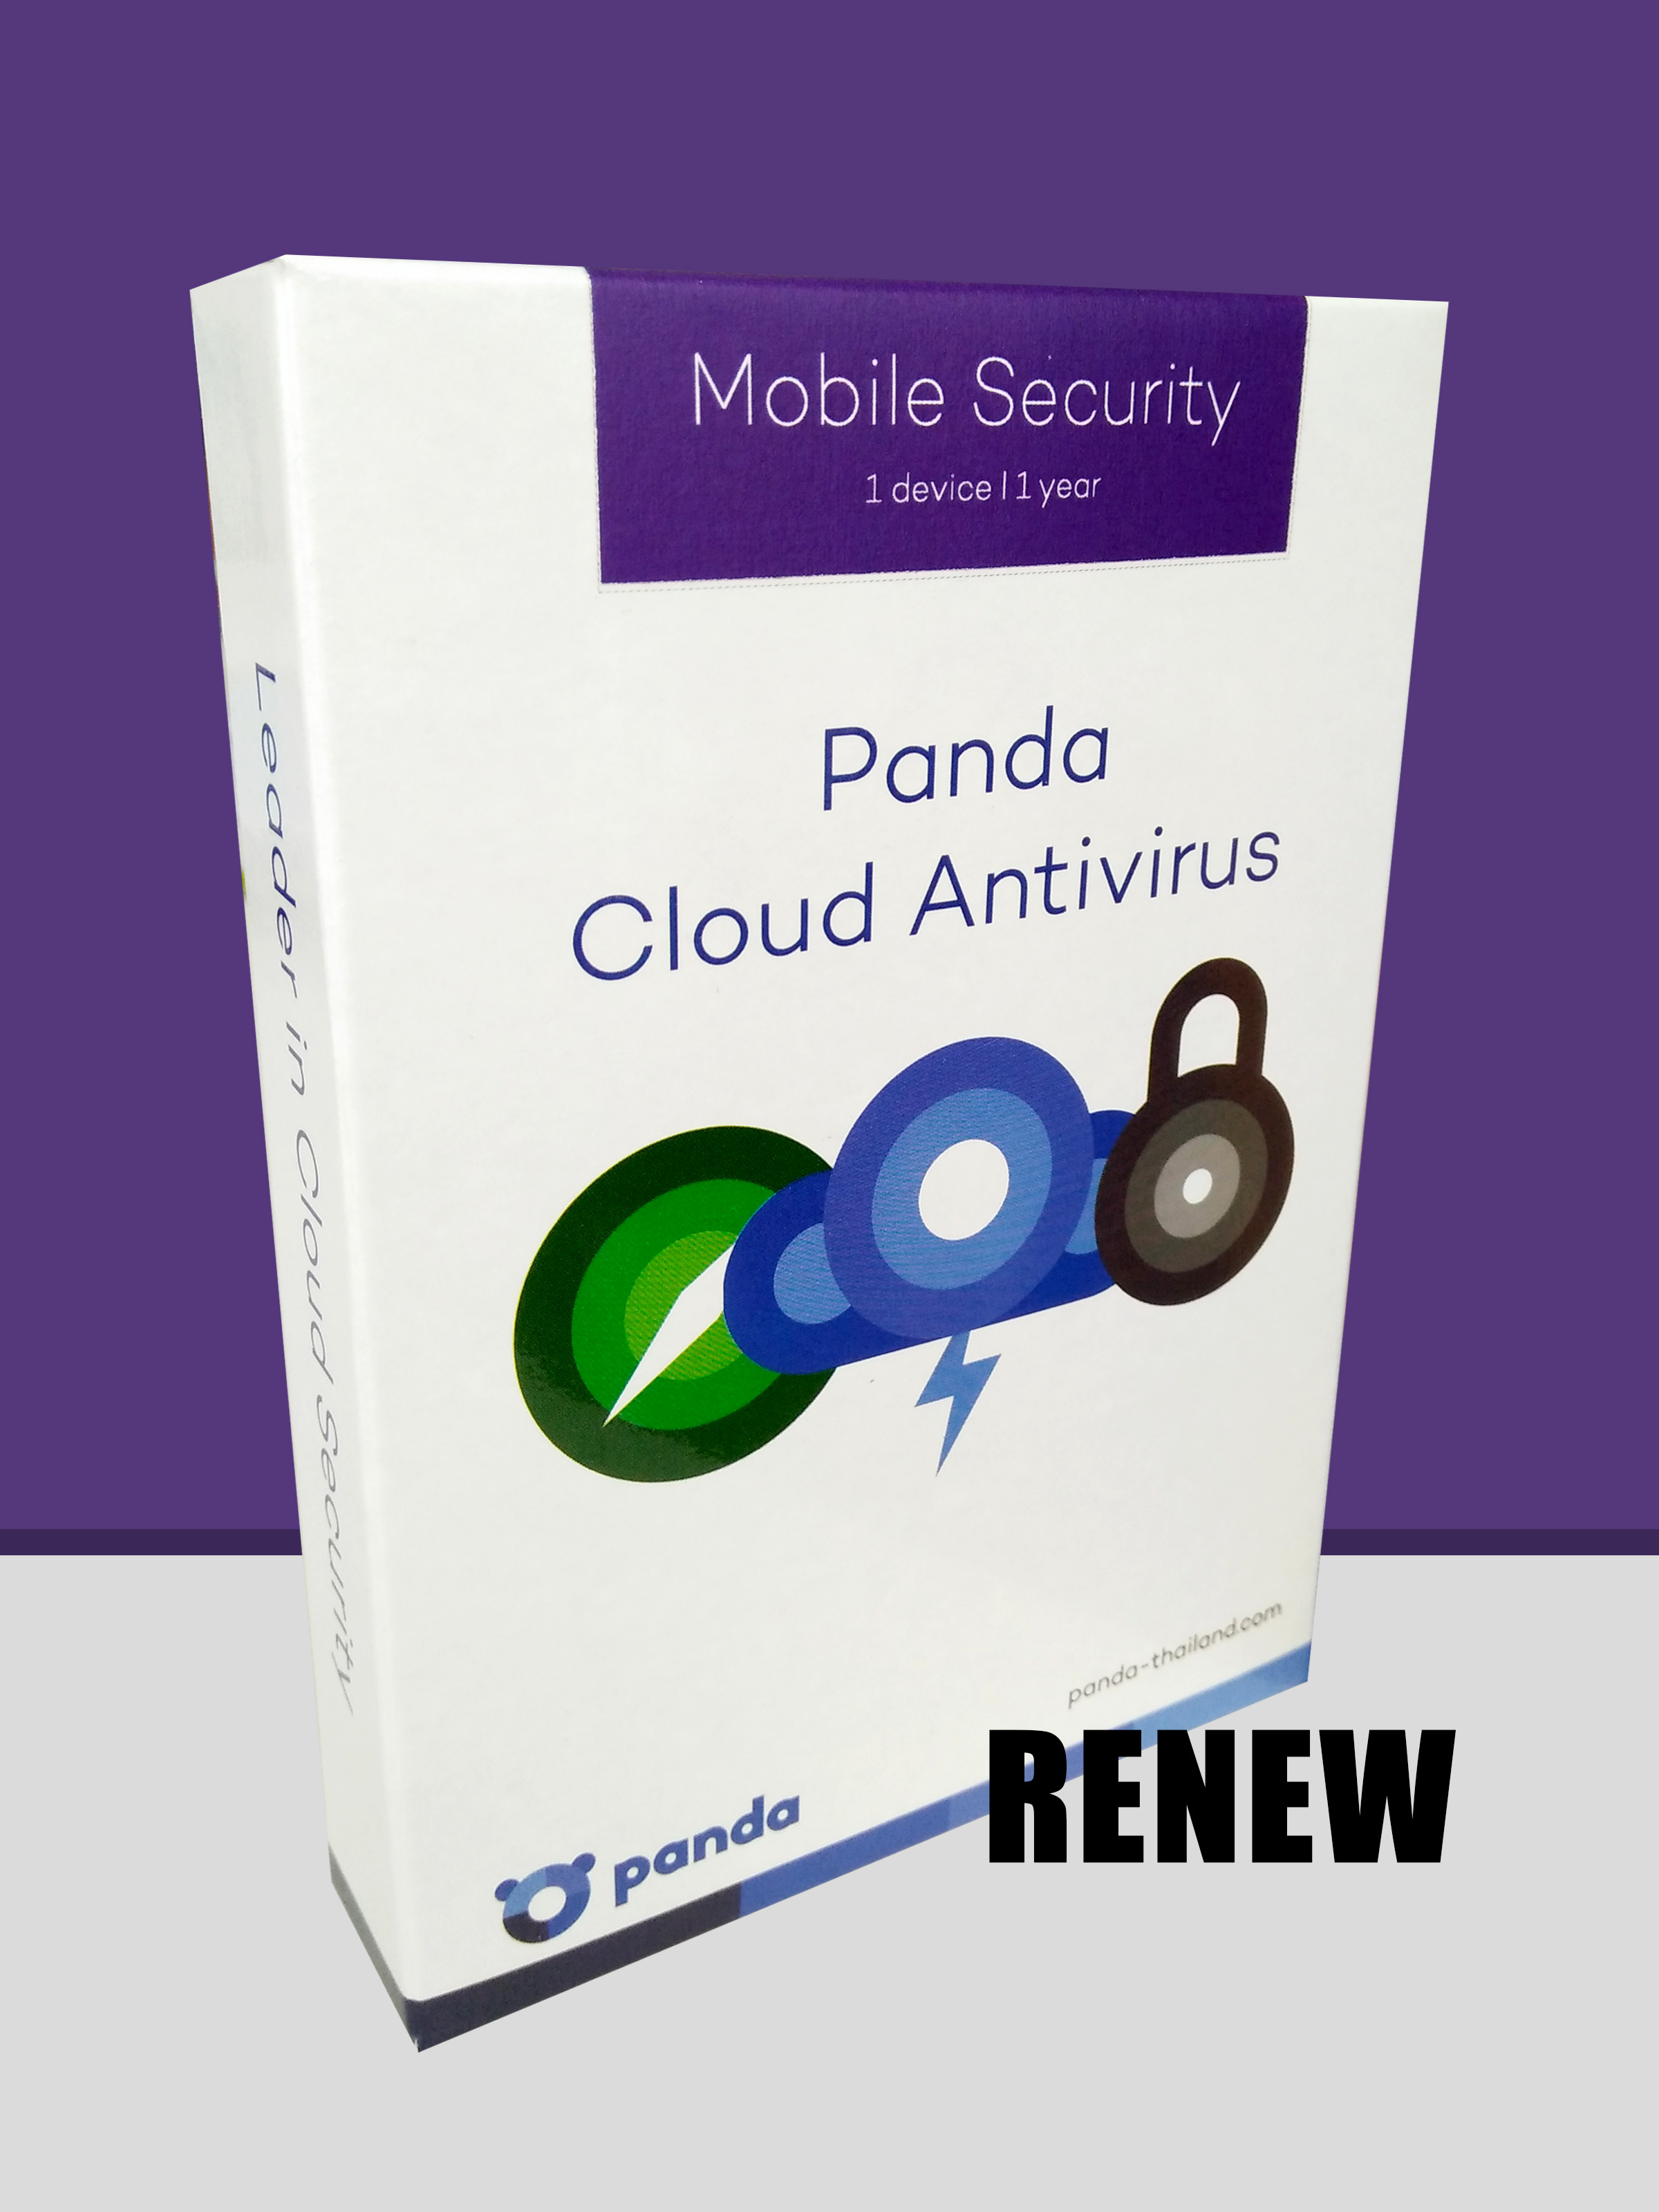 Renew - Panda Mobile Security (Key-code) 1 device